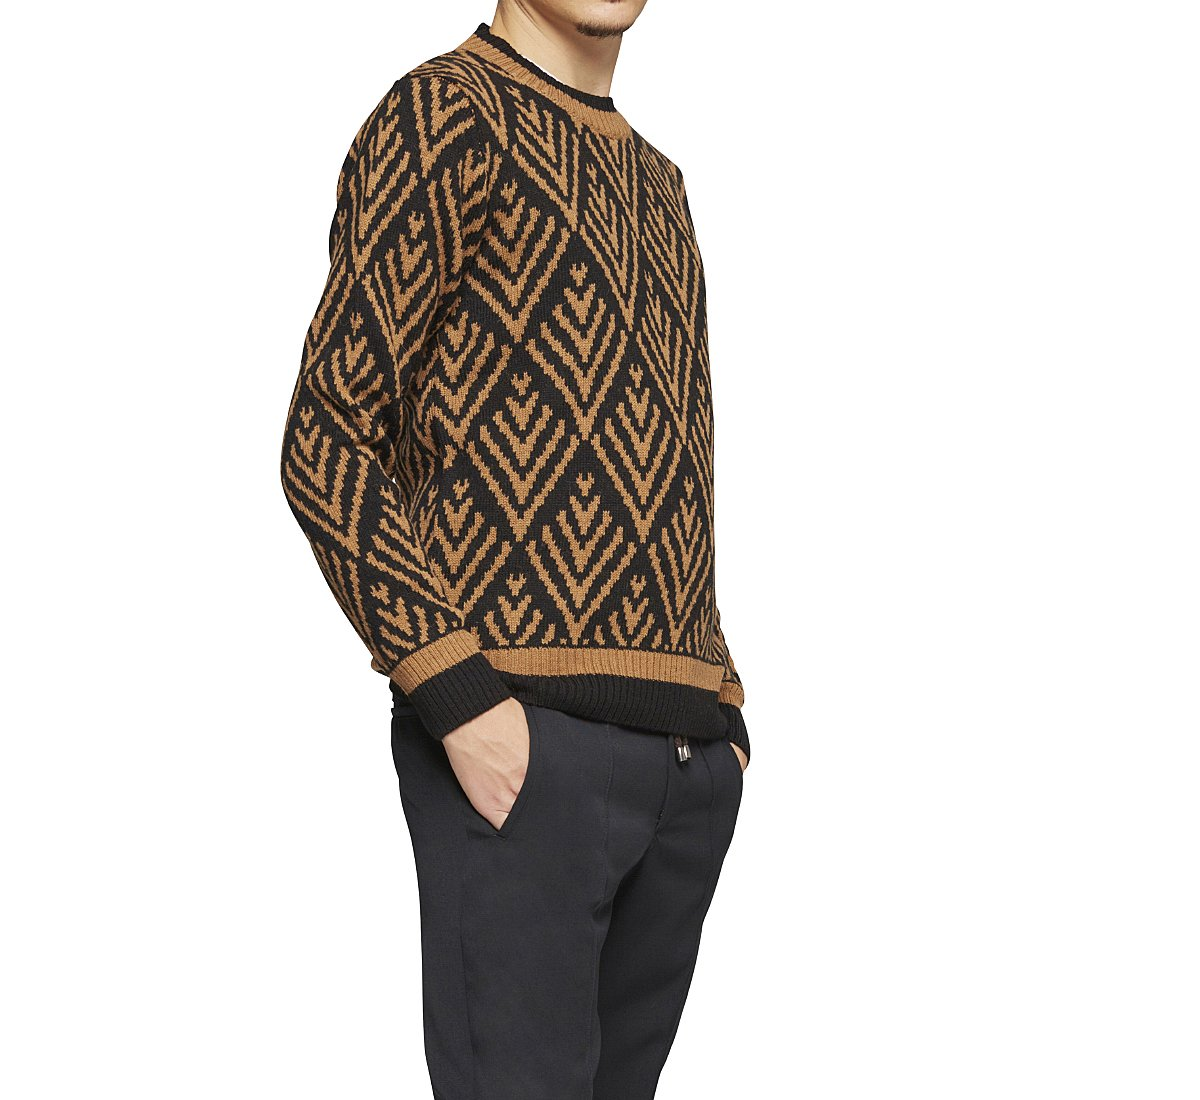 Two-tone ethnic style pullover